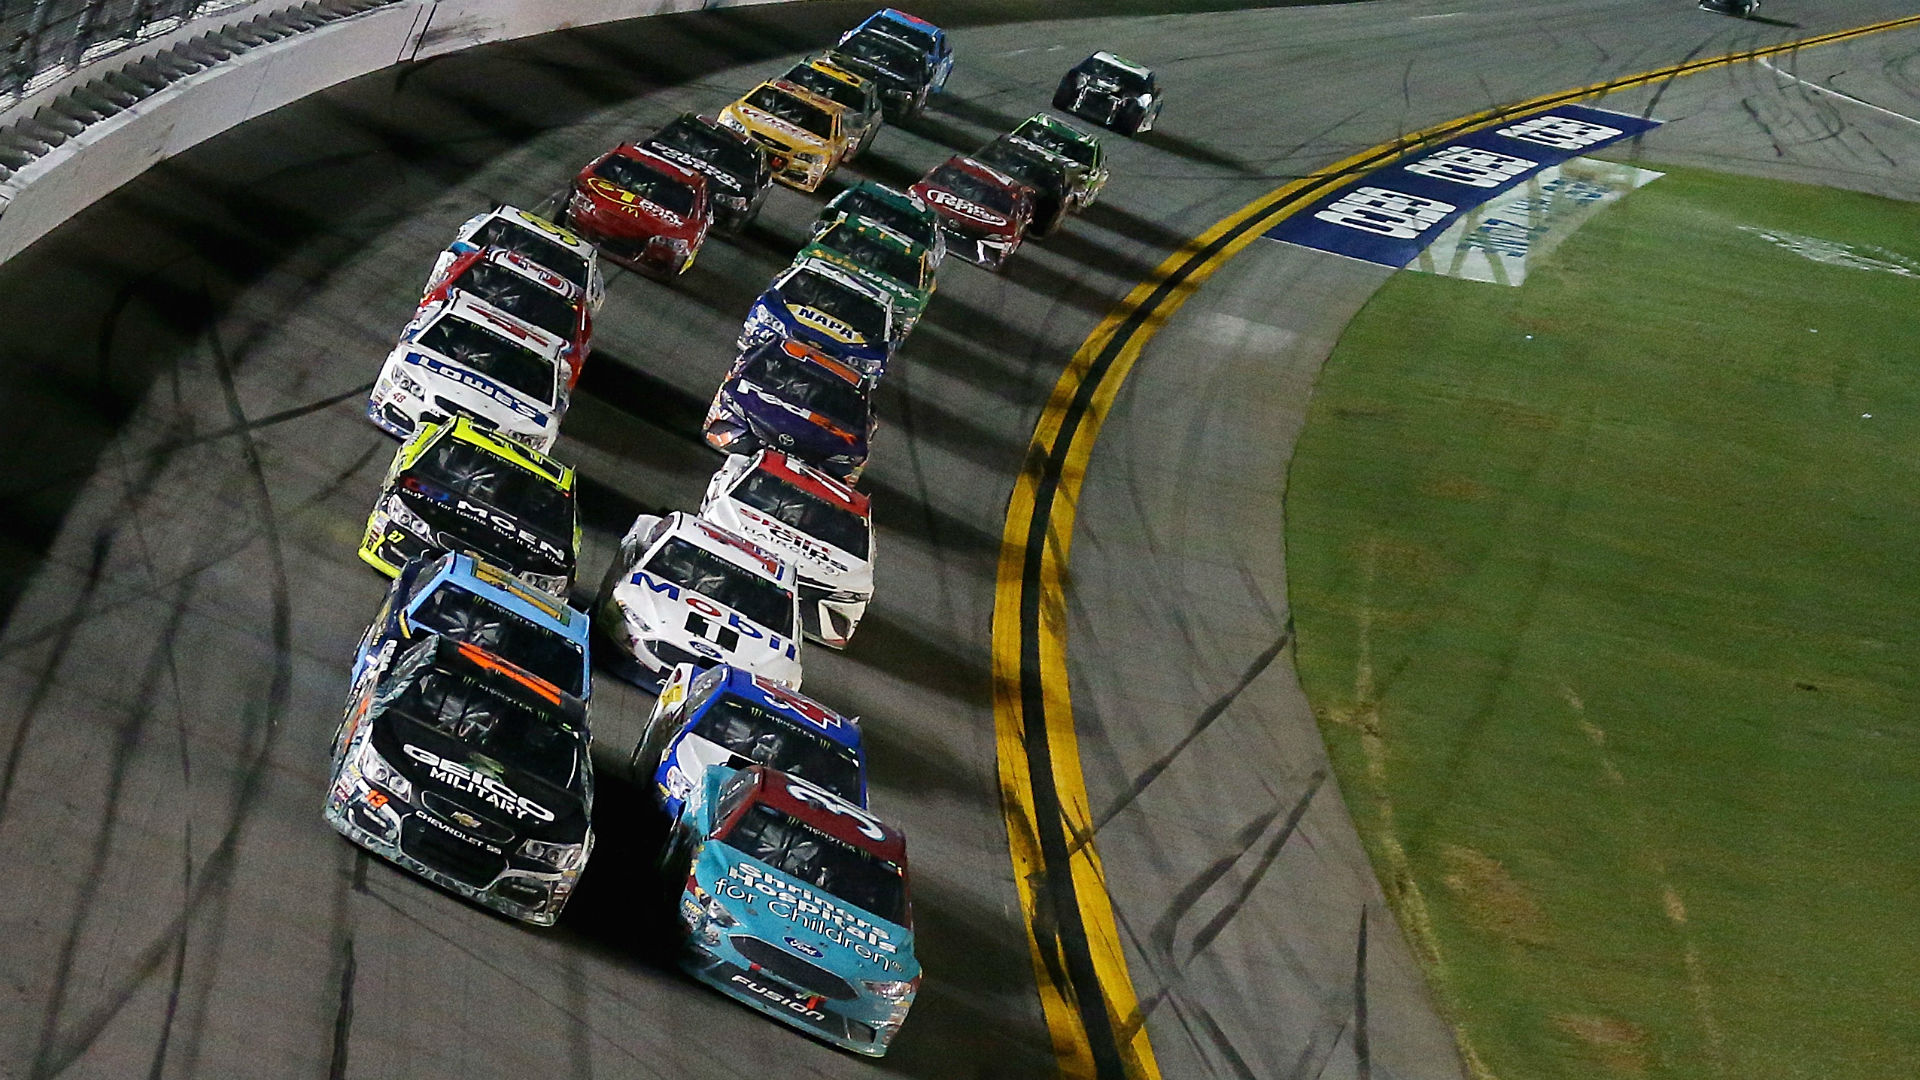 2018 NASCAR Cup Series schedule: Start times, TV channel for